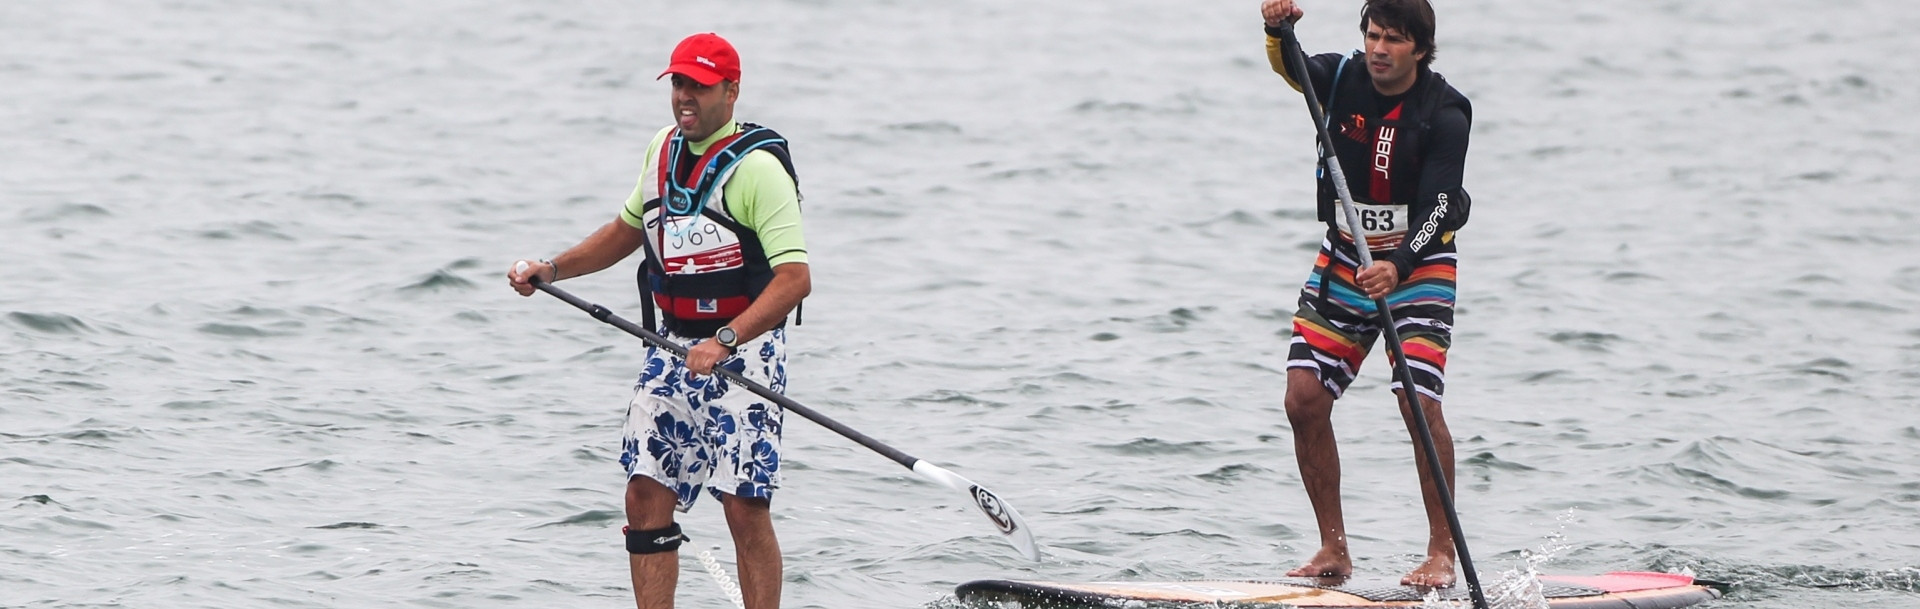 The planned ICF Stand Up Paddling World Championships ©ICF